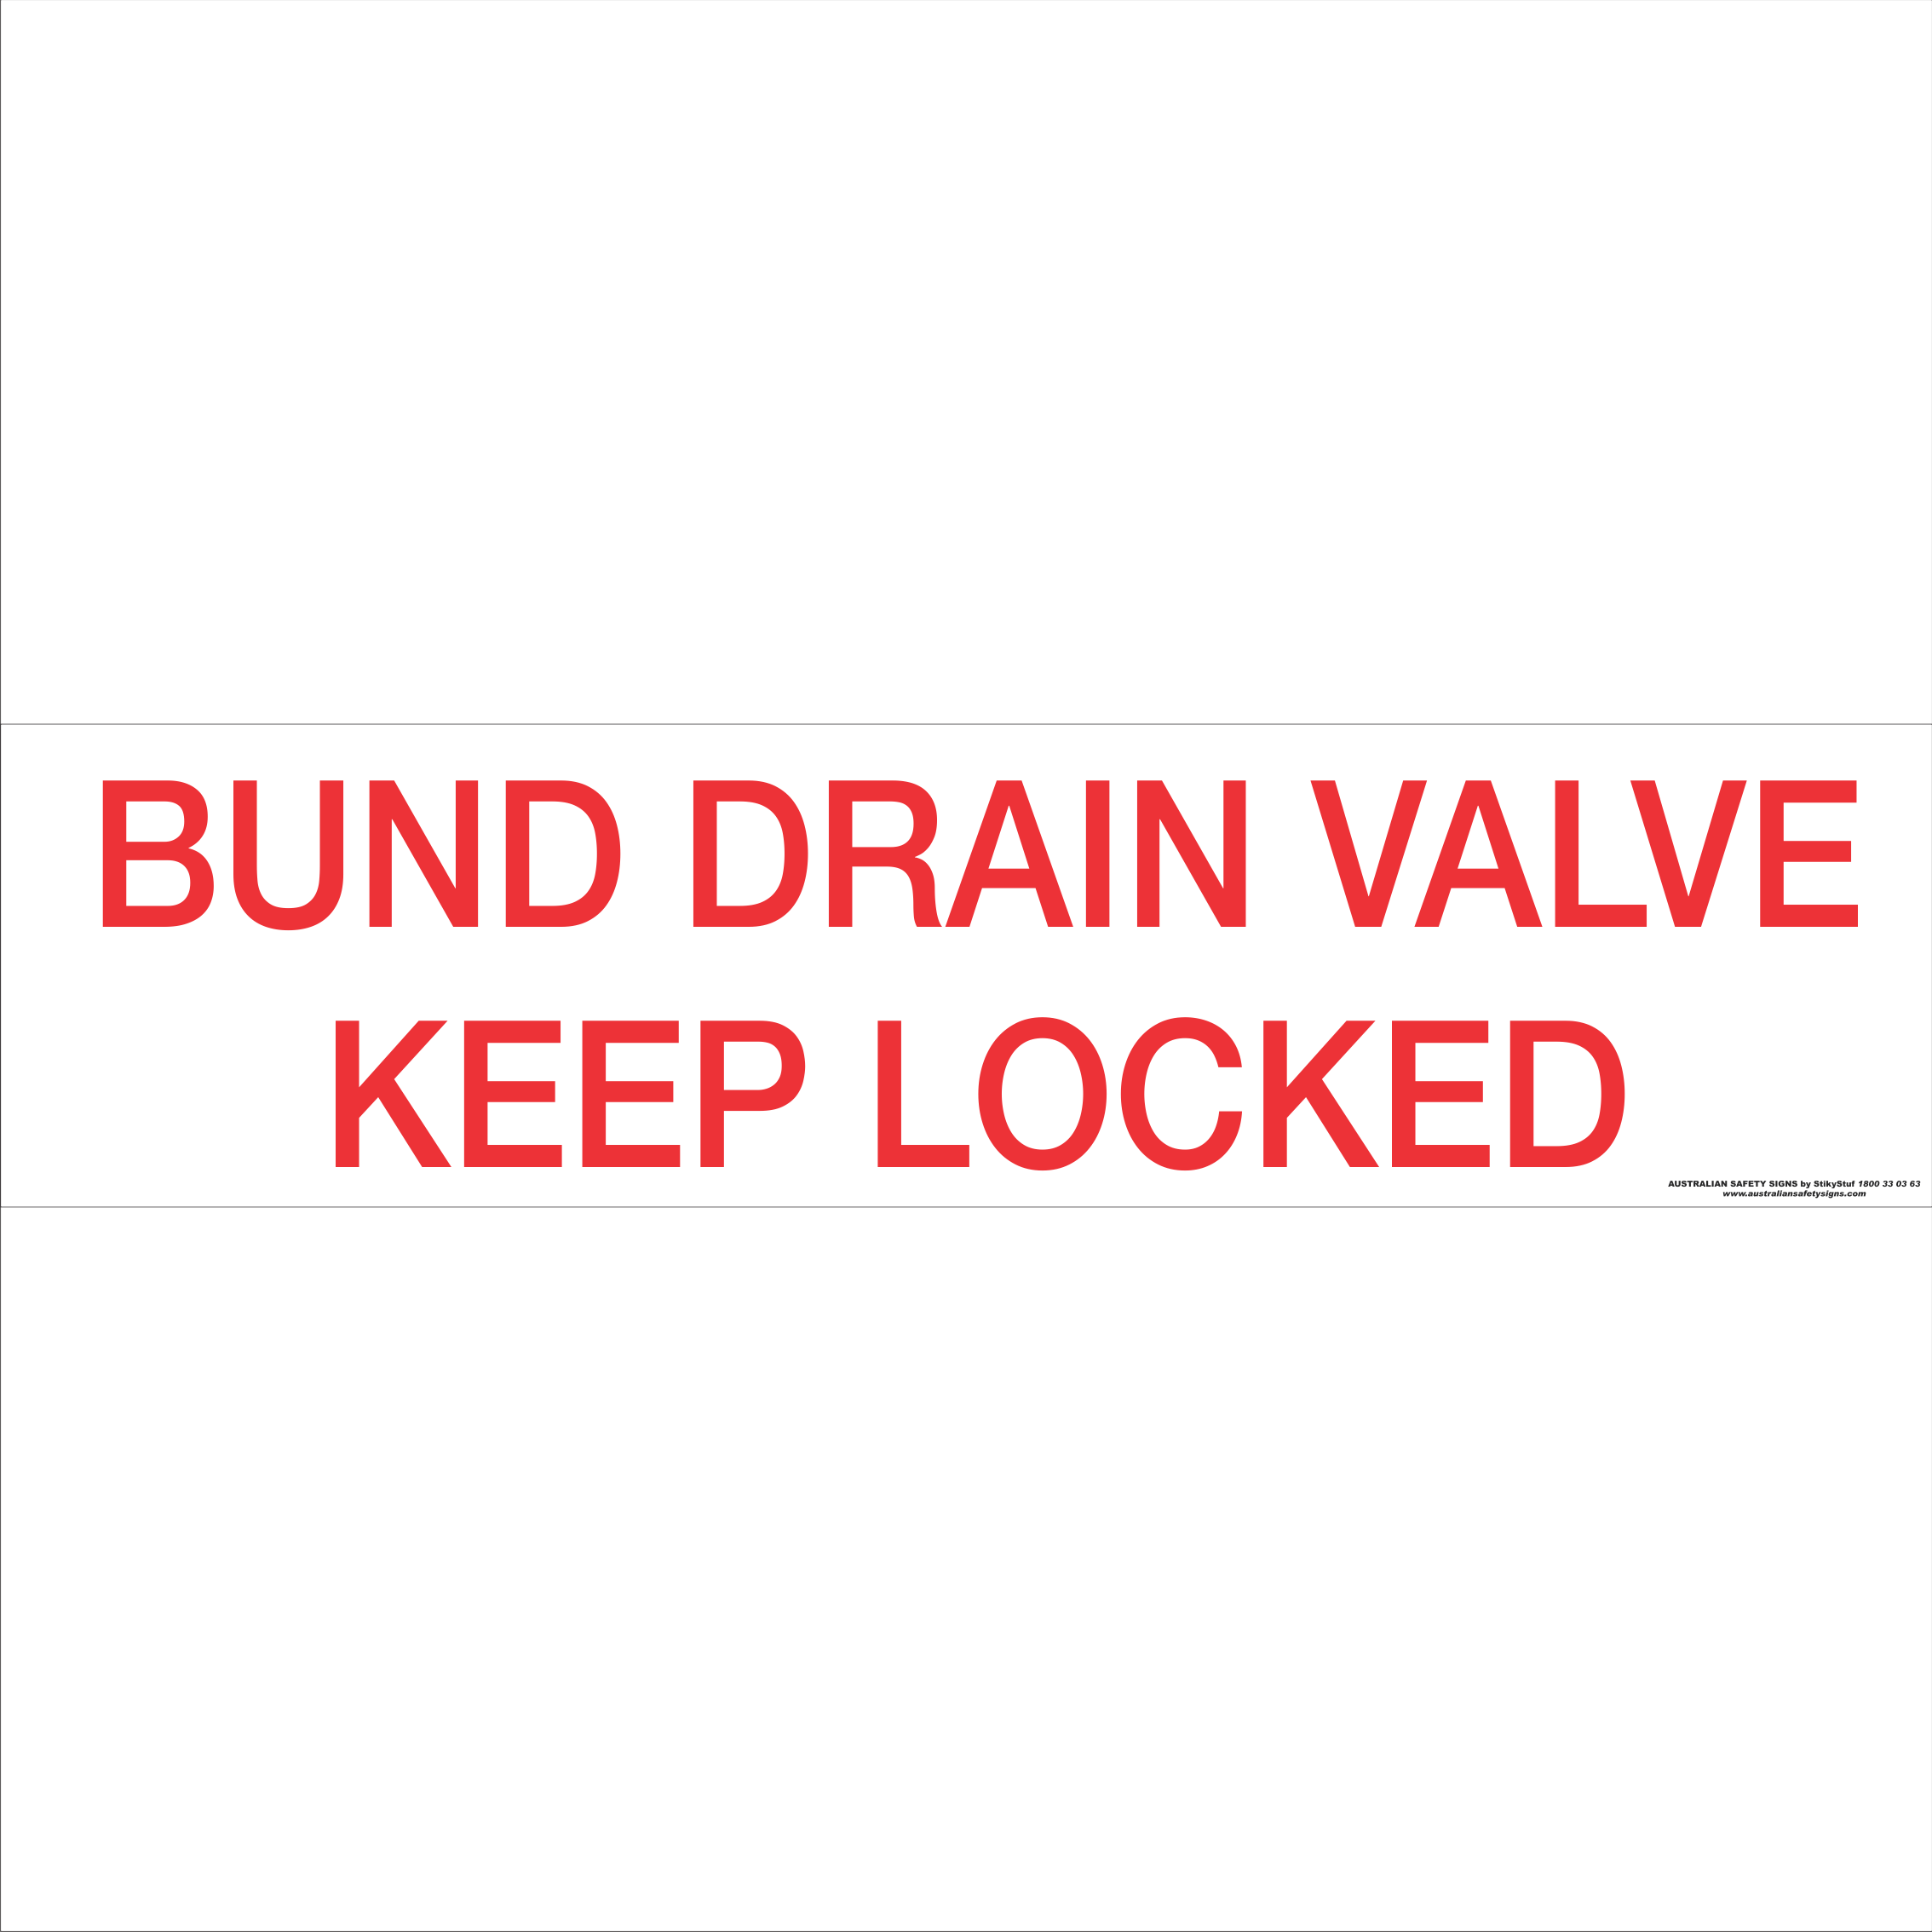 Miscellaneous Signs BUND DRAIN VALVE KEEP LOCKED